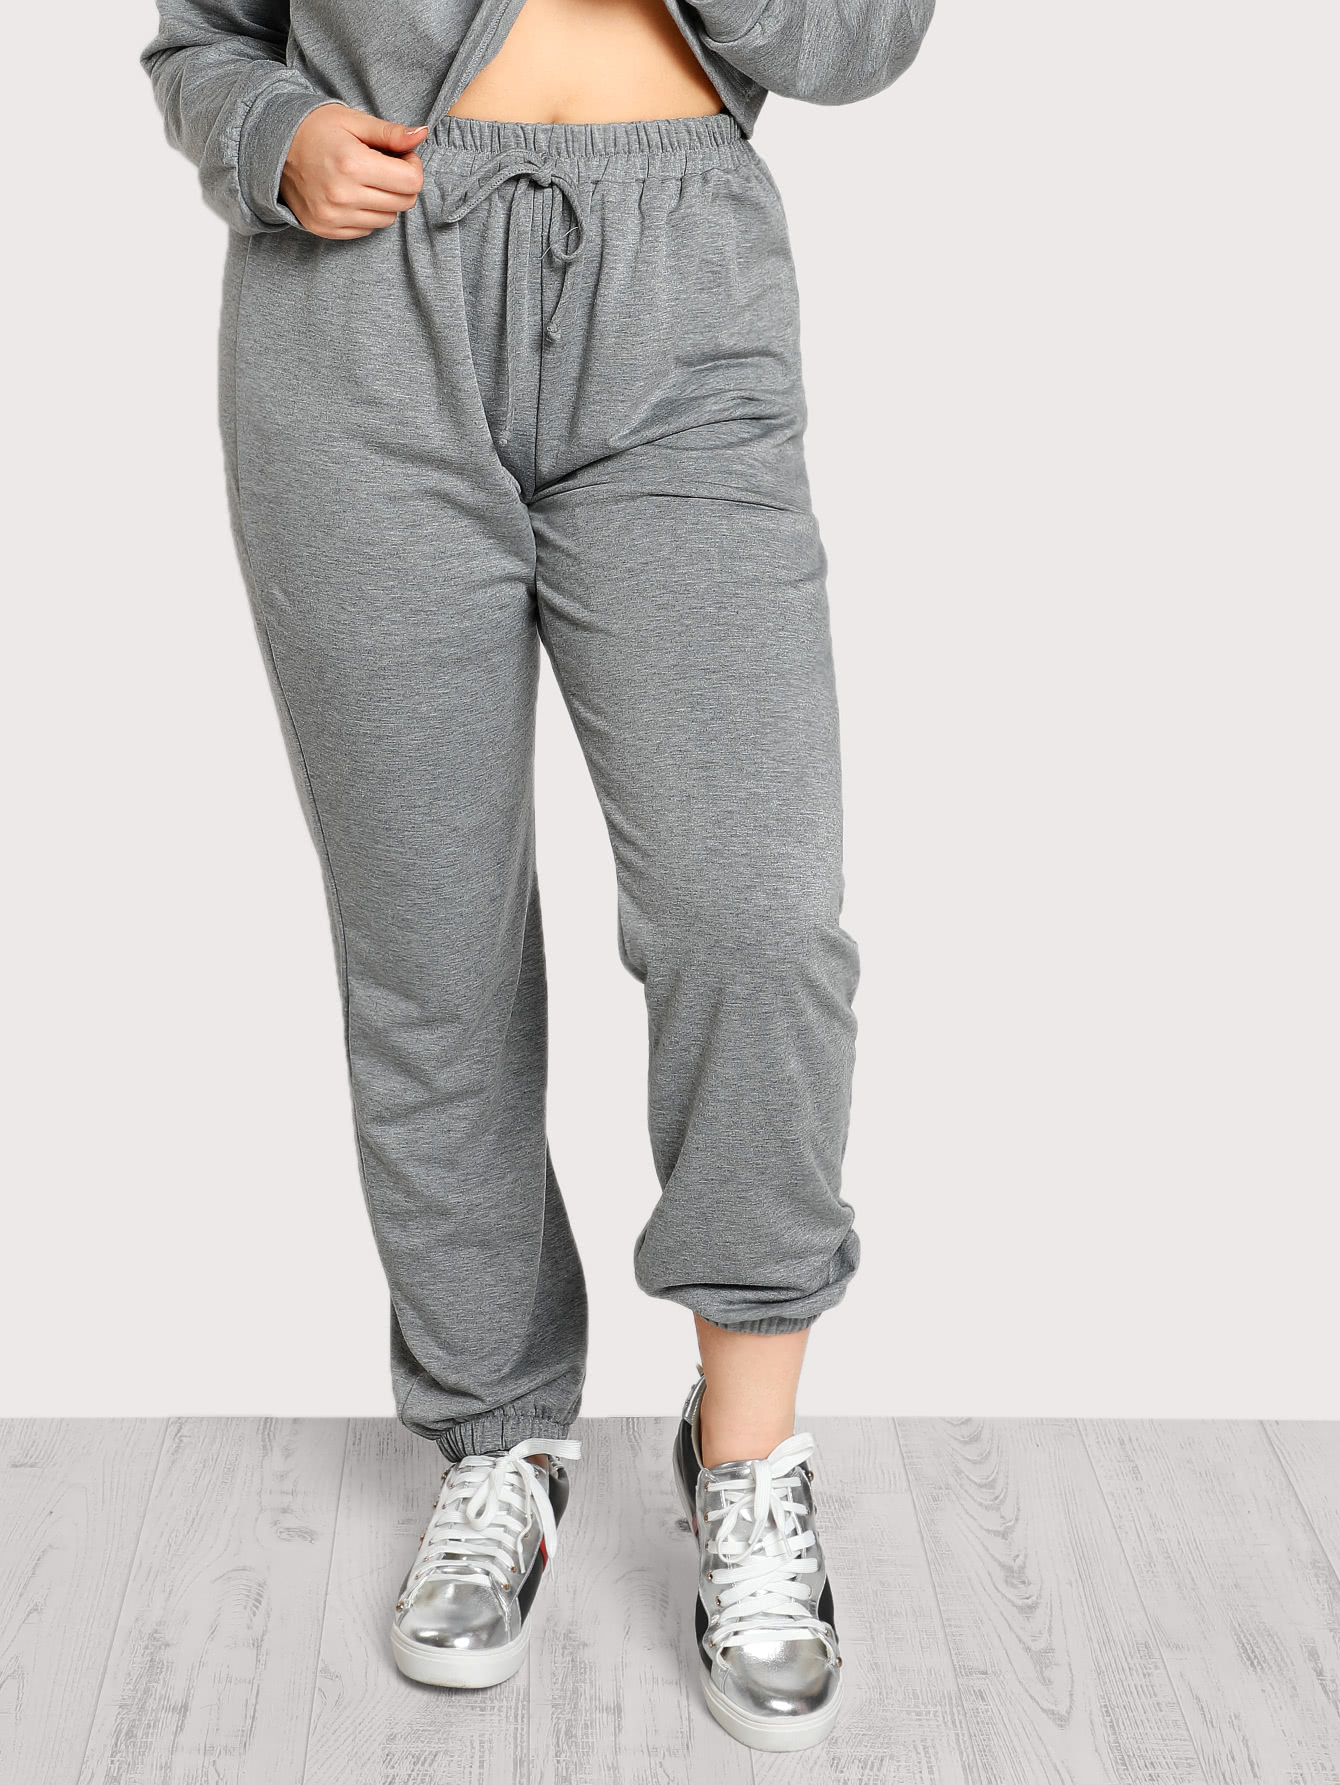 Heather Knit Sweatpants pants171108703